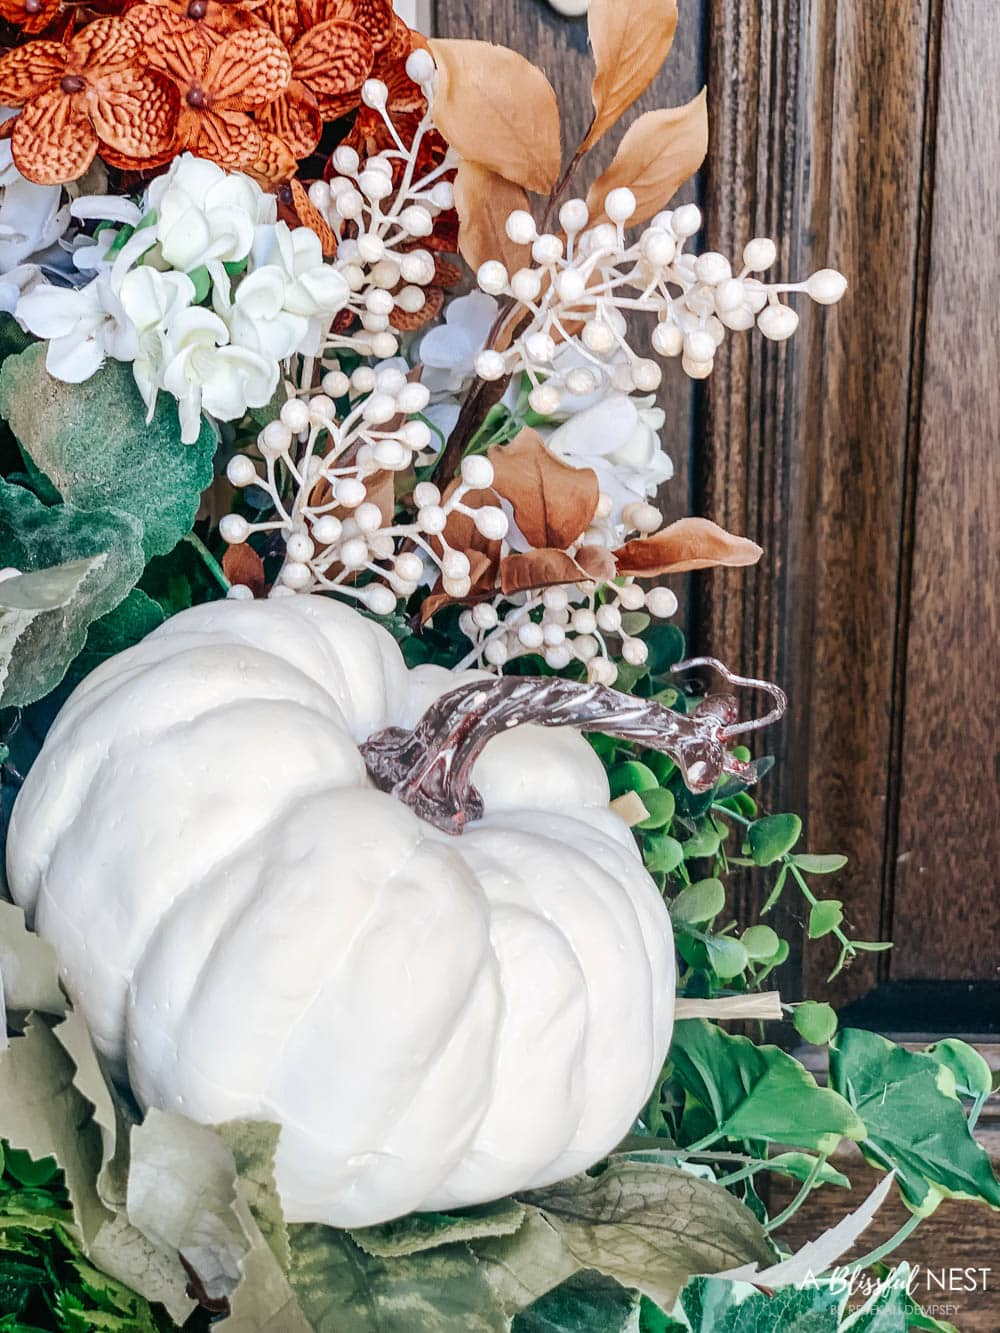 A small fall porch makeover with affordable finds from pumpkins, lanterns, fall wreath, and more. #ABlissfulNest #HobbyLobby #HobbyLobbyFinds #ad #fallporch #falldecor